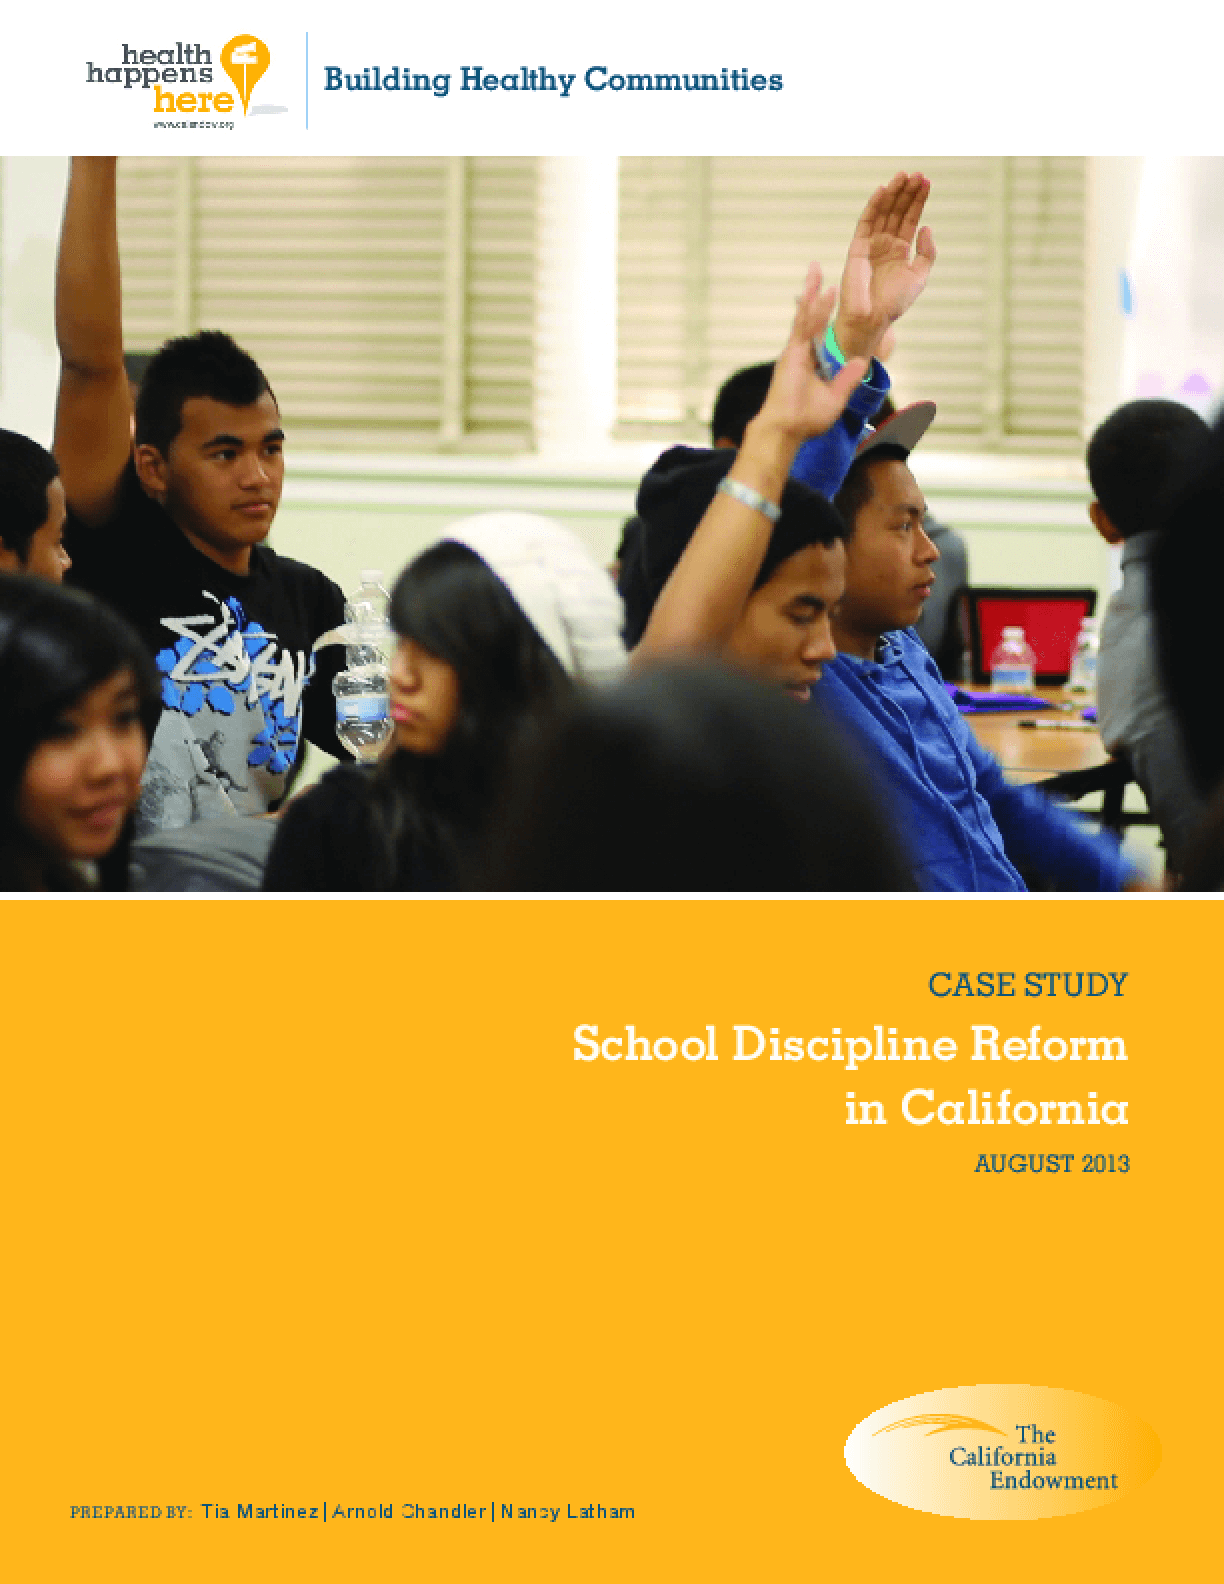 Case Study: School Discipline Reform in California